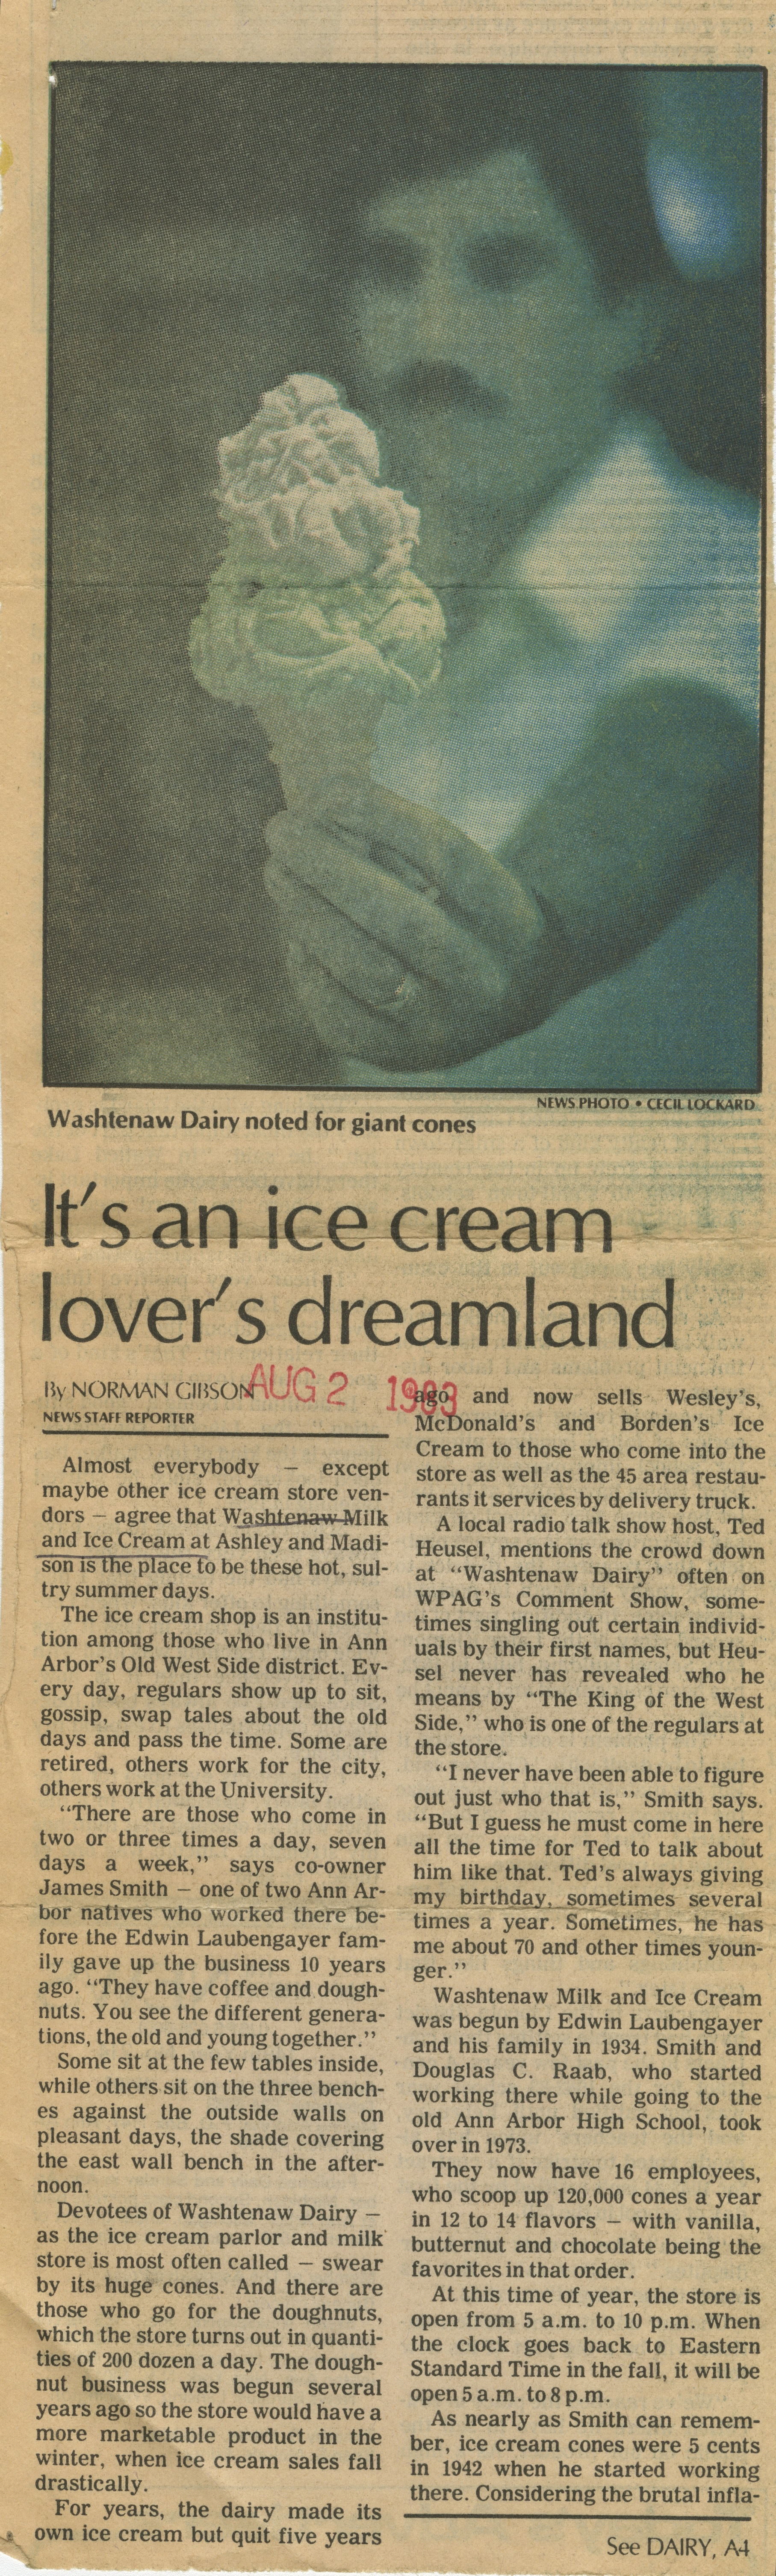 It's an ice cream lover's dreamland image